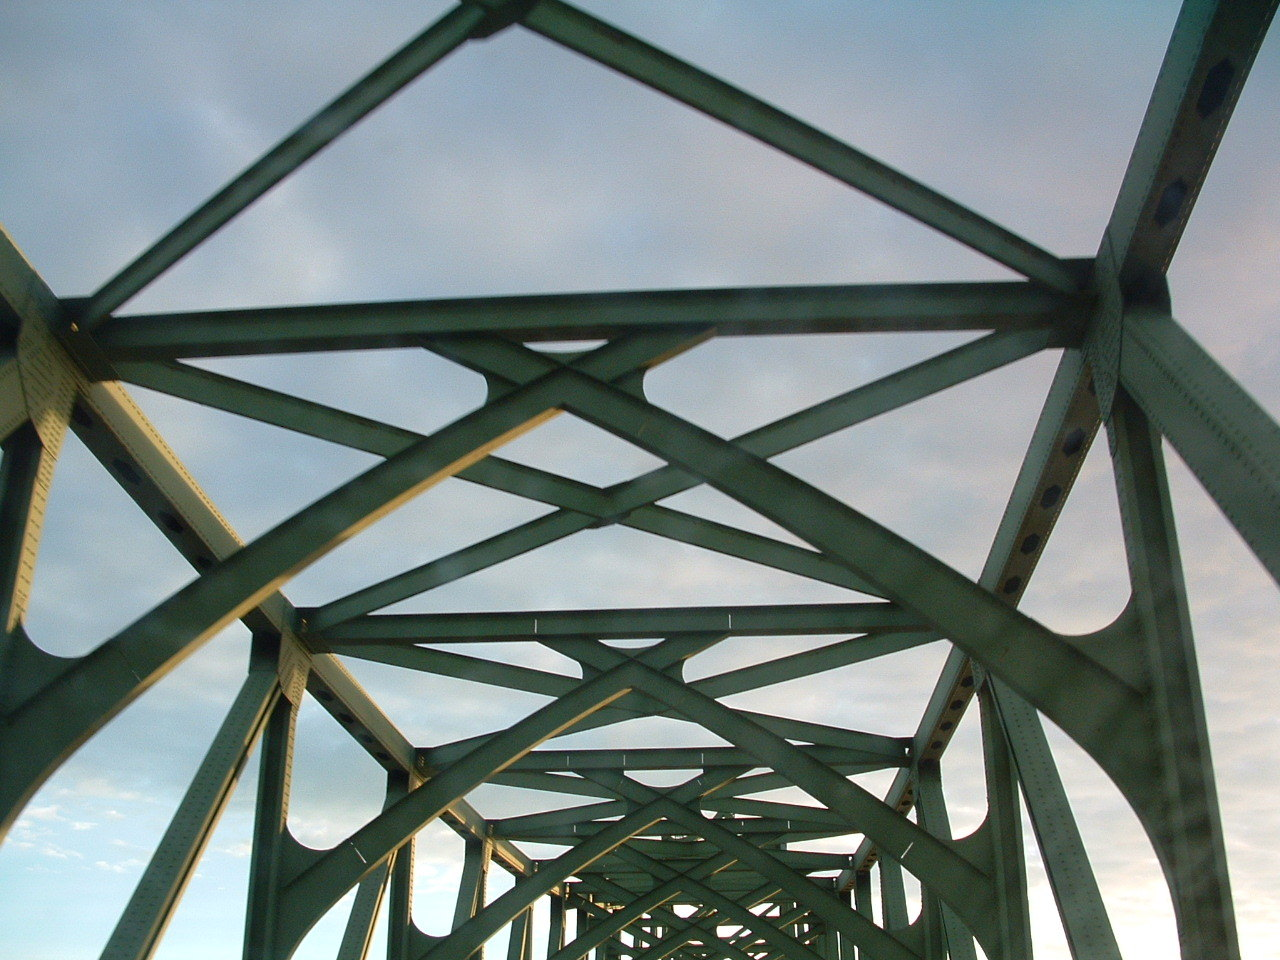 criss-crossing the bridge